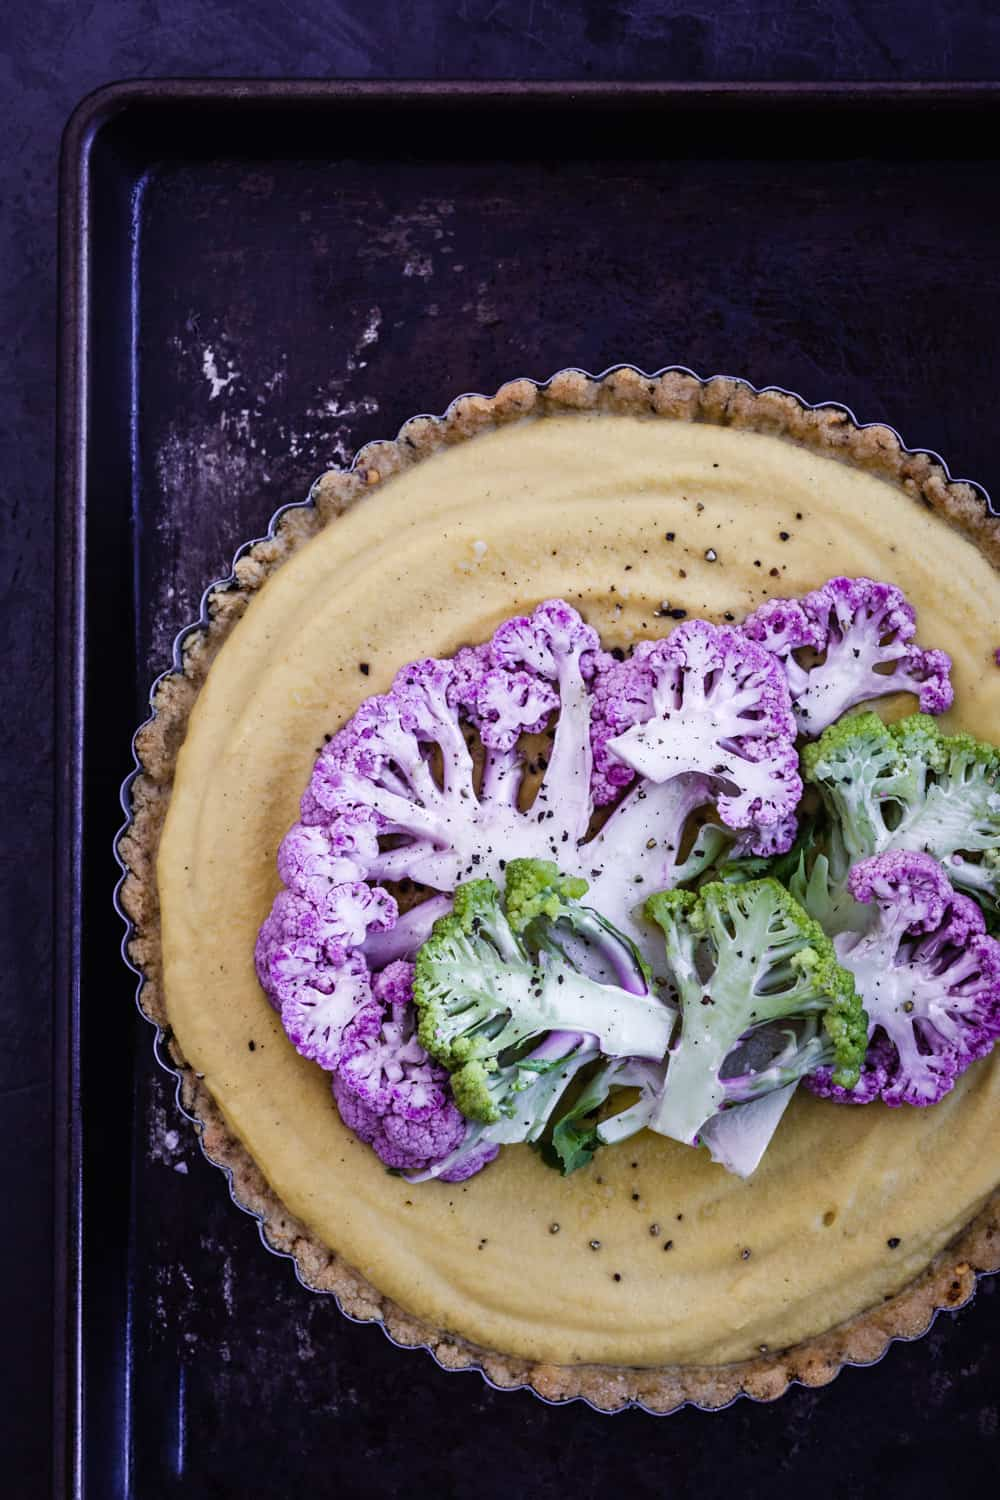 Yellow cauliflower tart, topped with purple and green thinly sliced cauliflower, pre-oven.